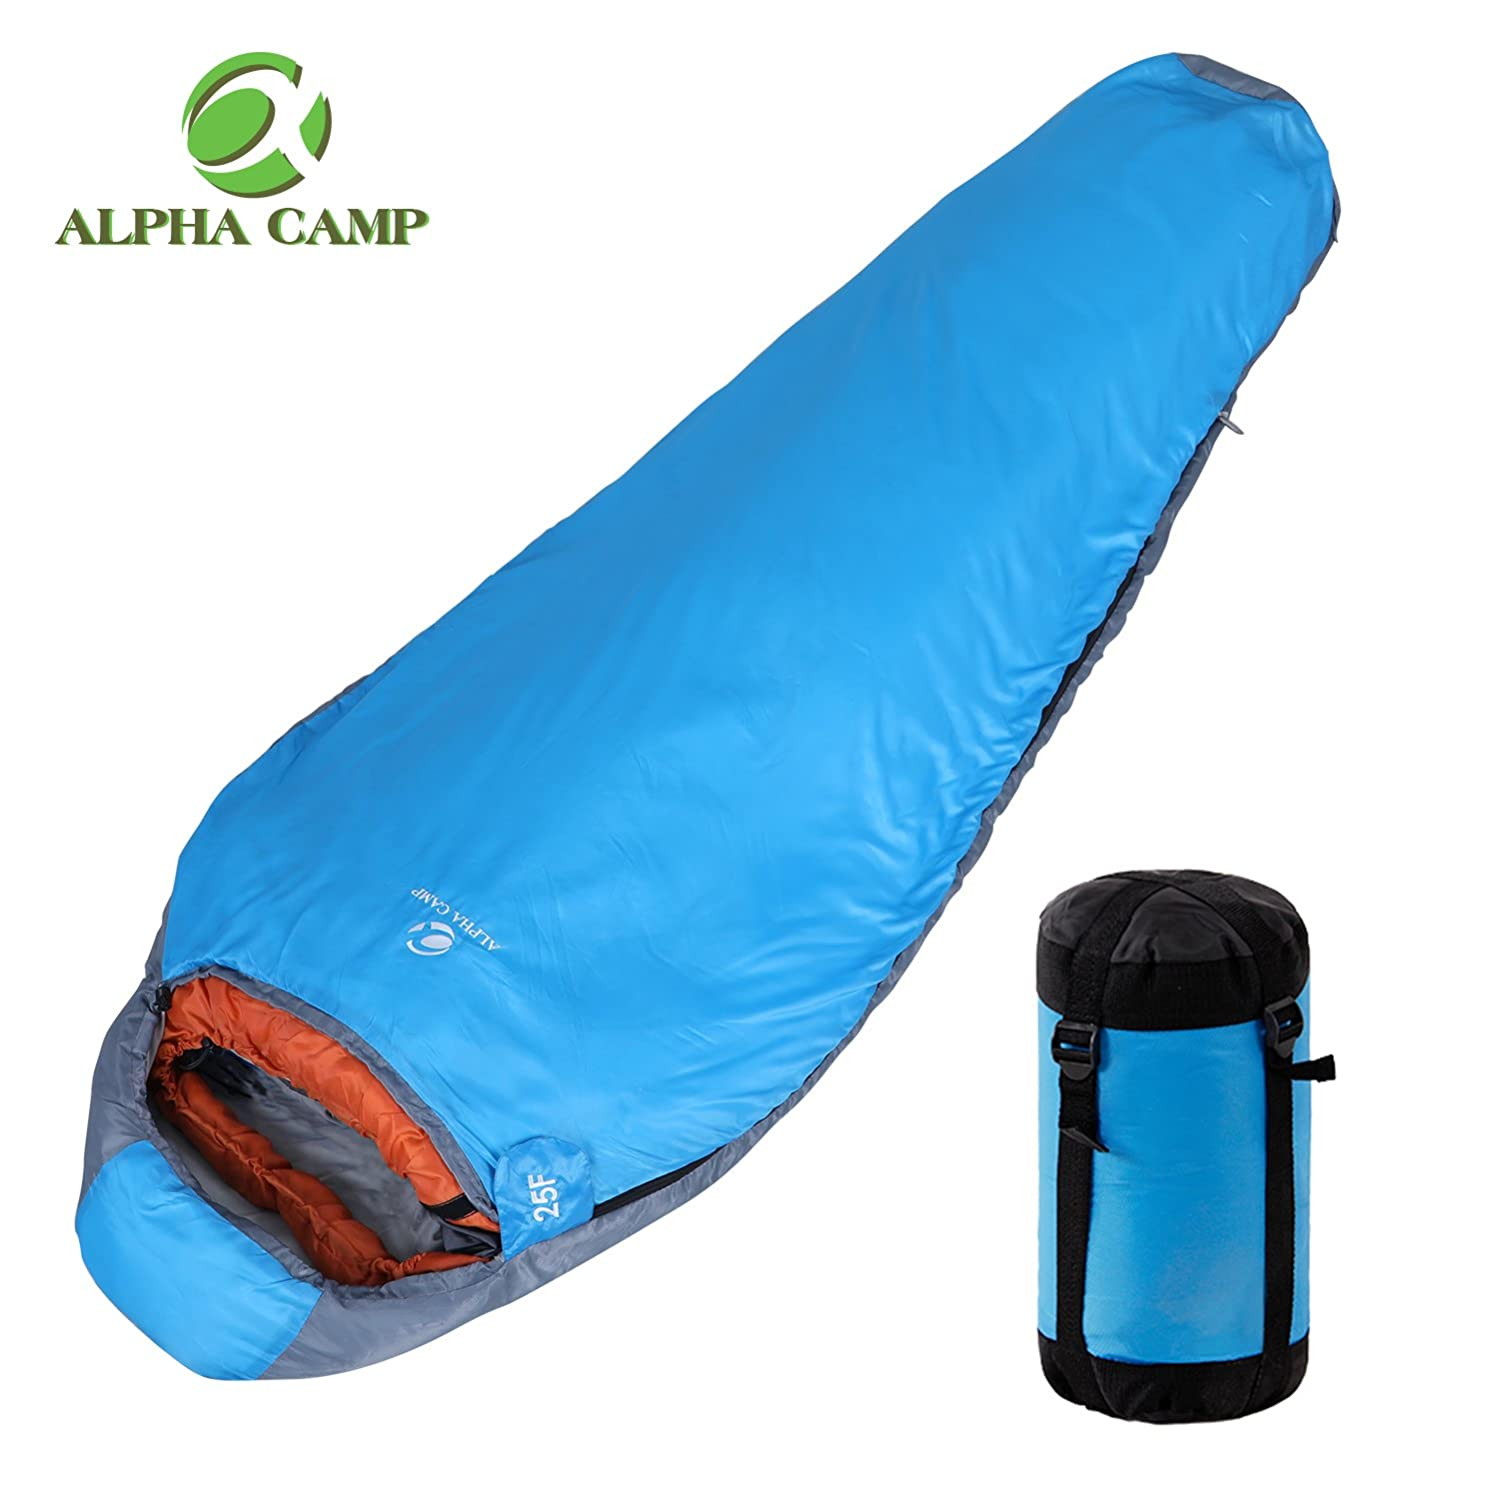 アルファCamp Sleepingバッグ超軽量Mummy Sleeping Bag 3 Season 41 ℉ -59 ℉ Camping Sleepingバッグ B077MHNT5J